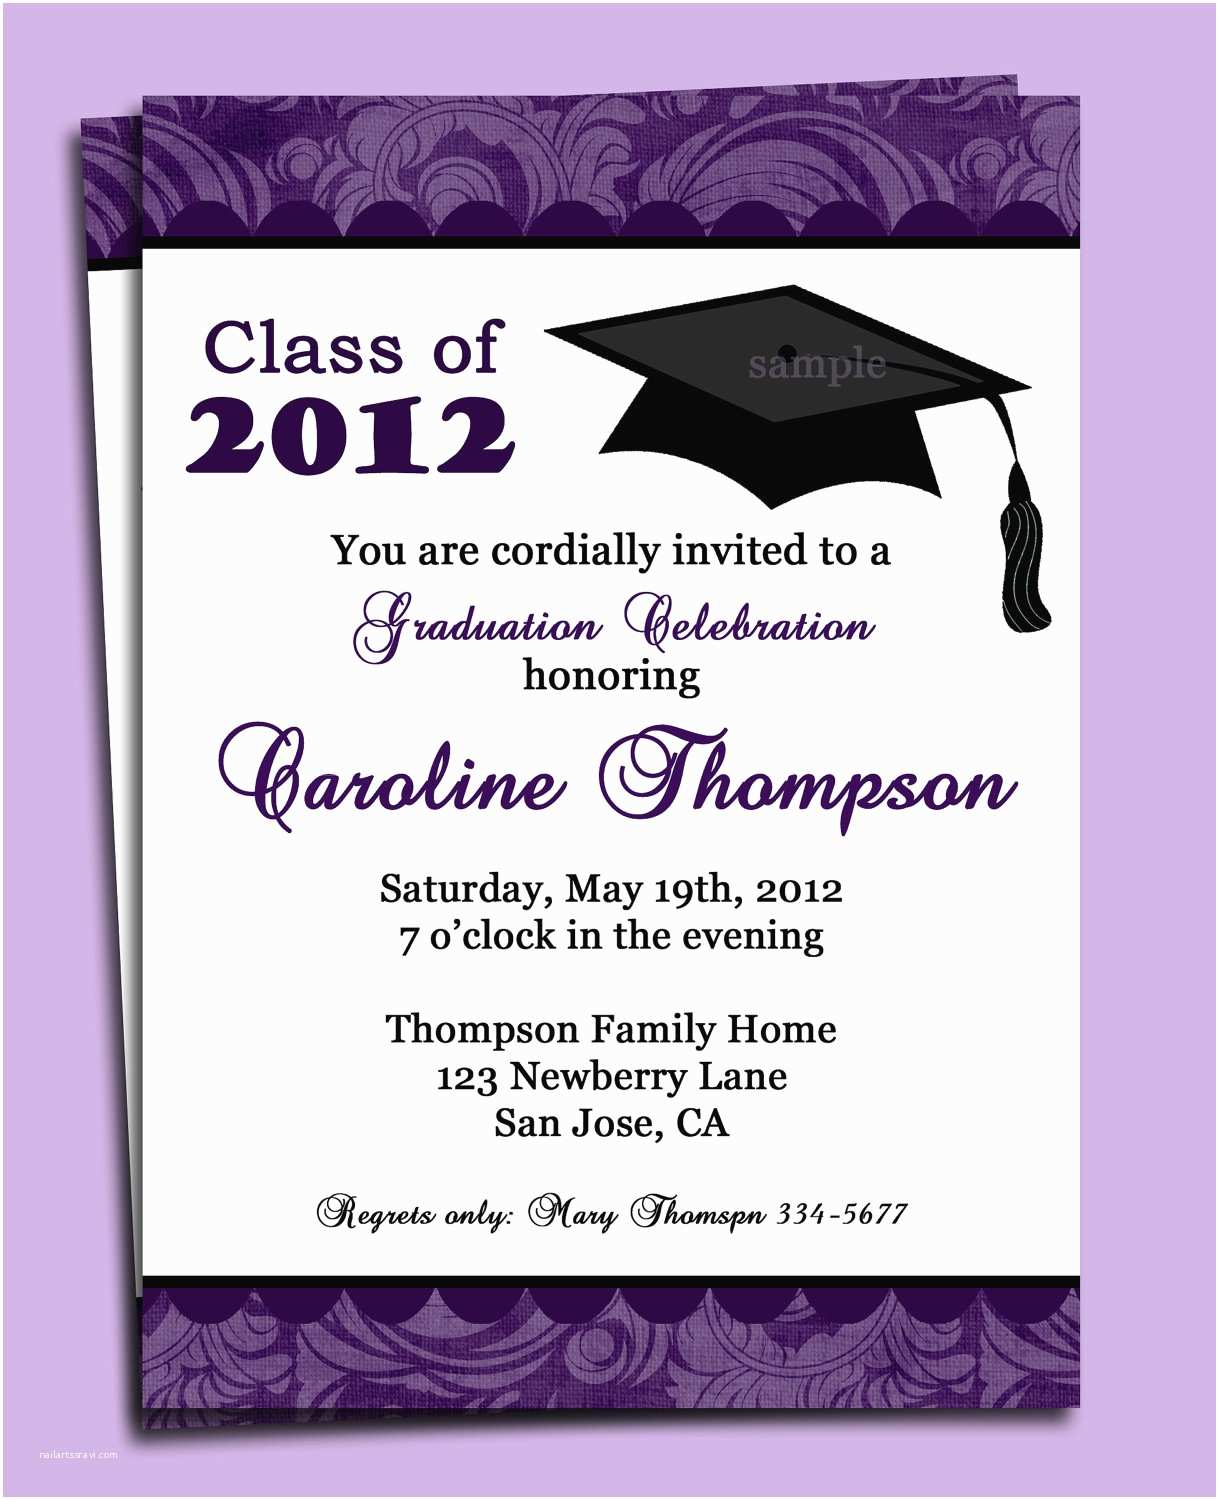 Cheap Graduation Party Invitations top 15 Cheap Graduation Party Invitations for You